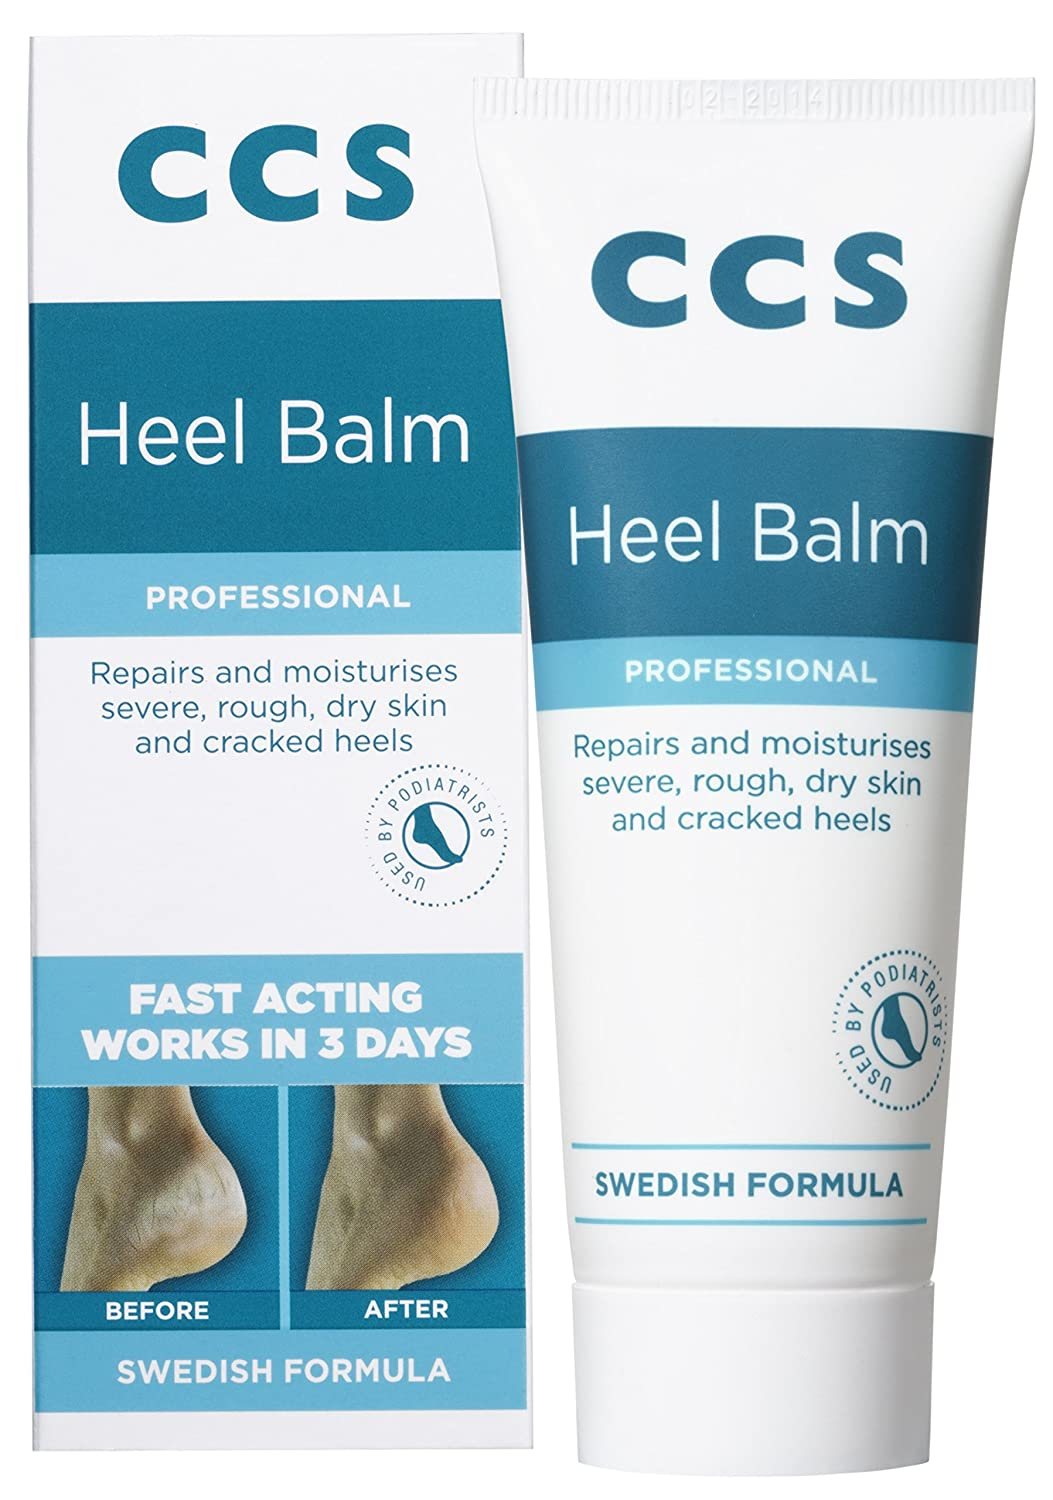 Cracks on the heels of how to clean at home Effective ways and feedback